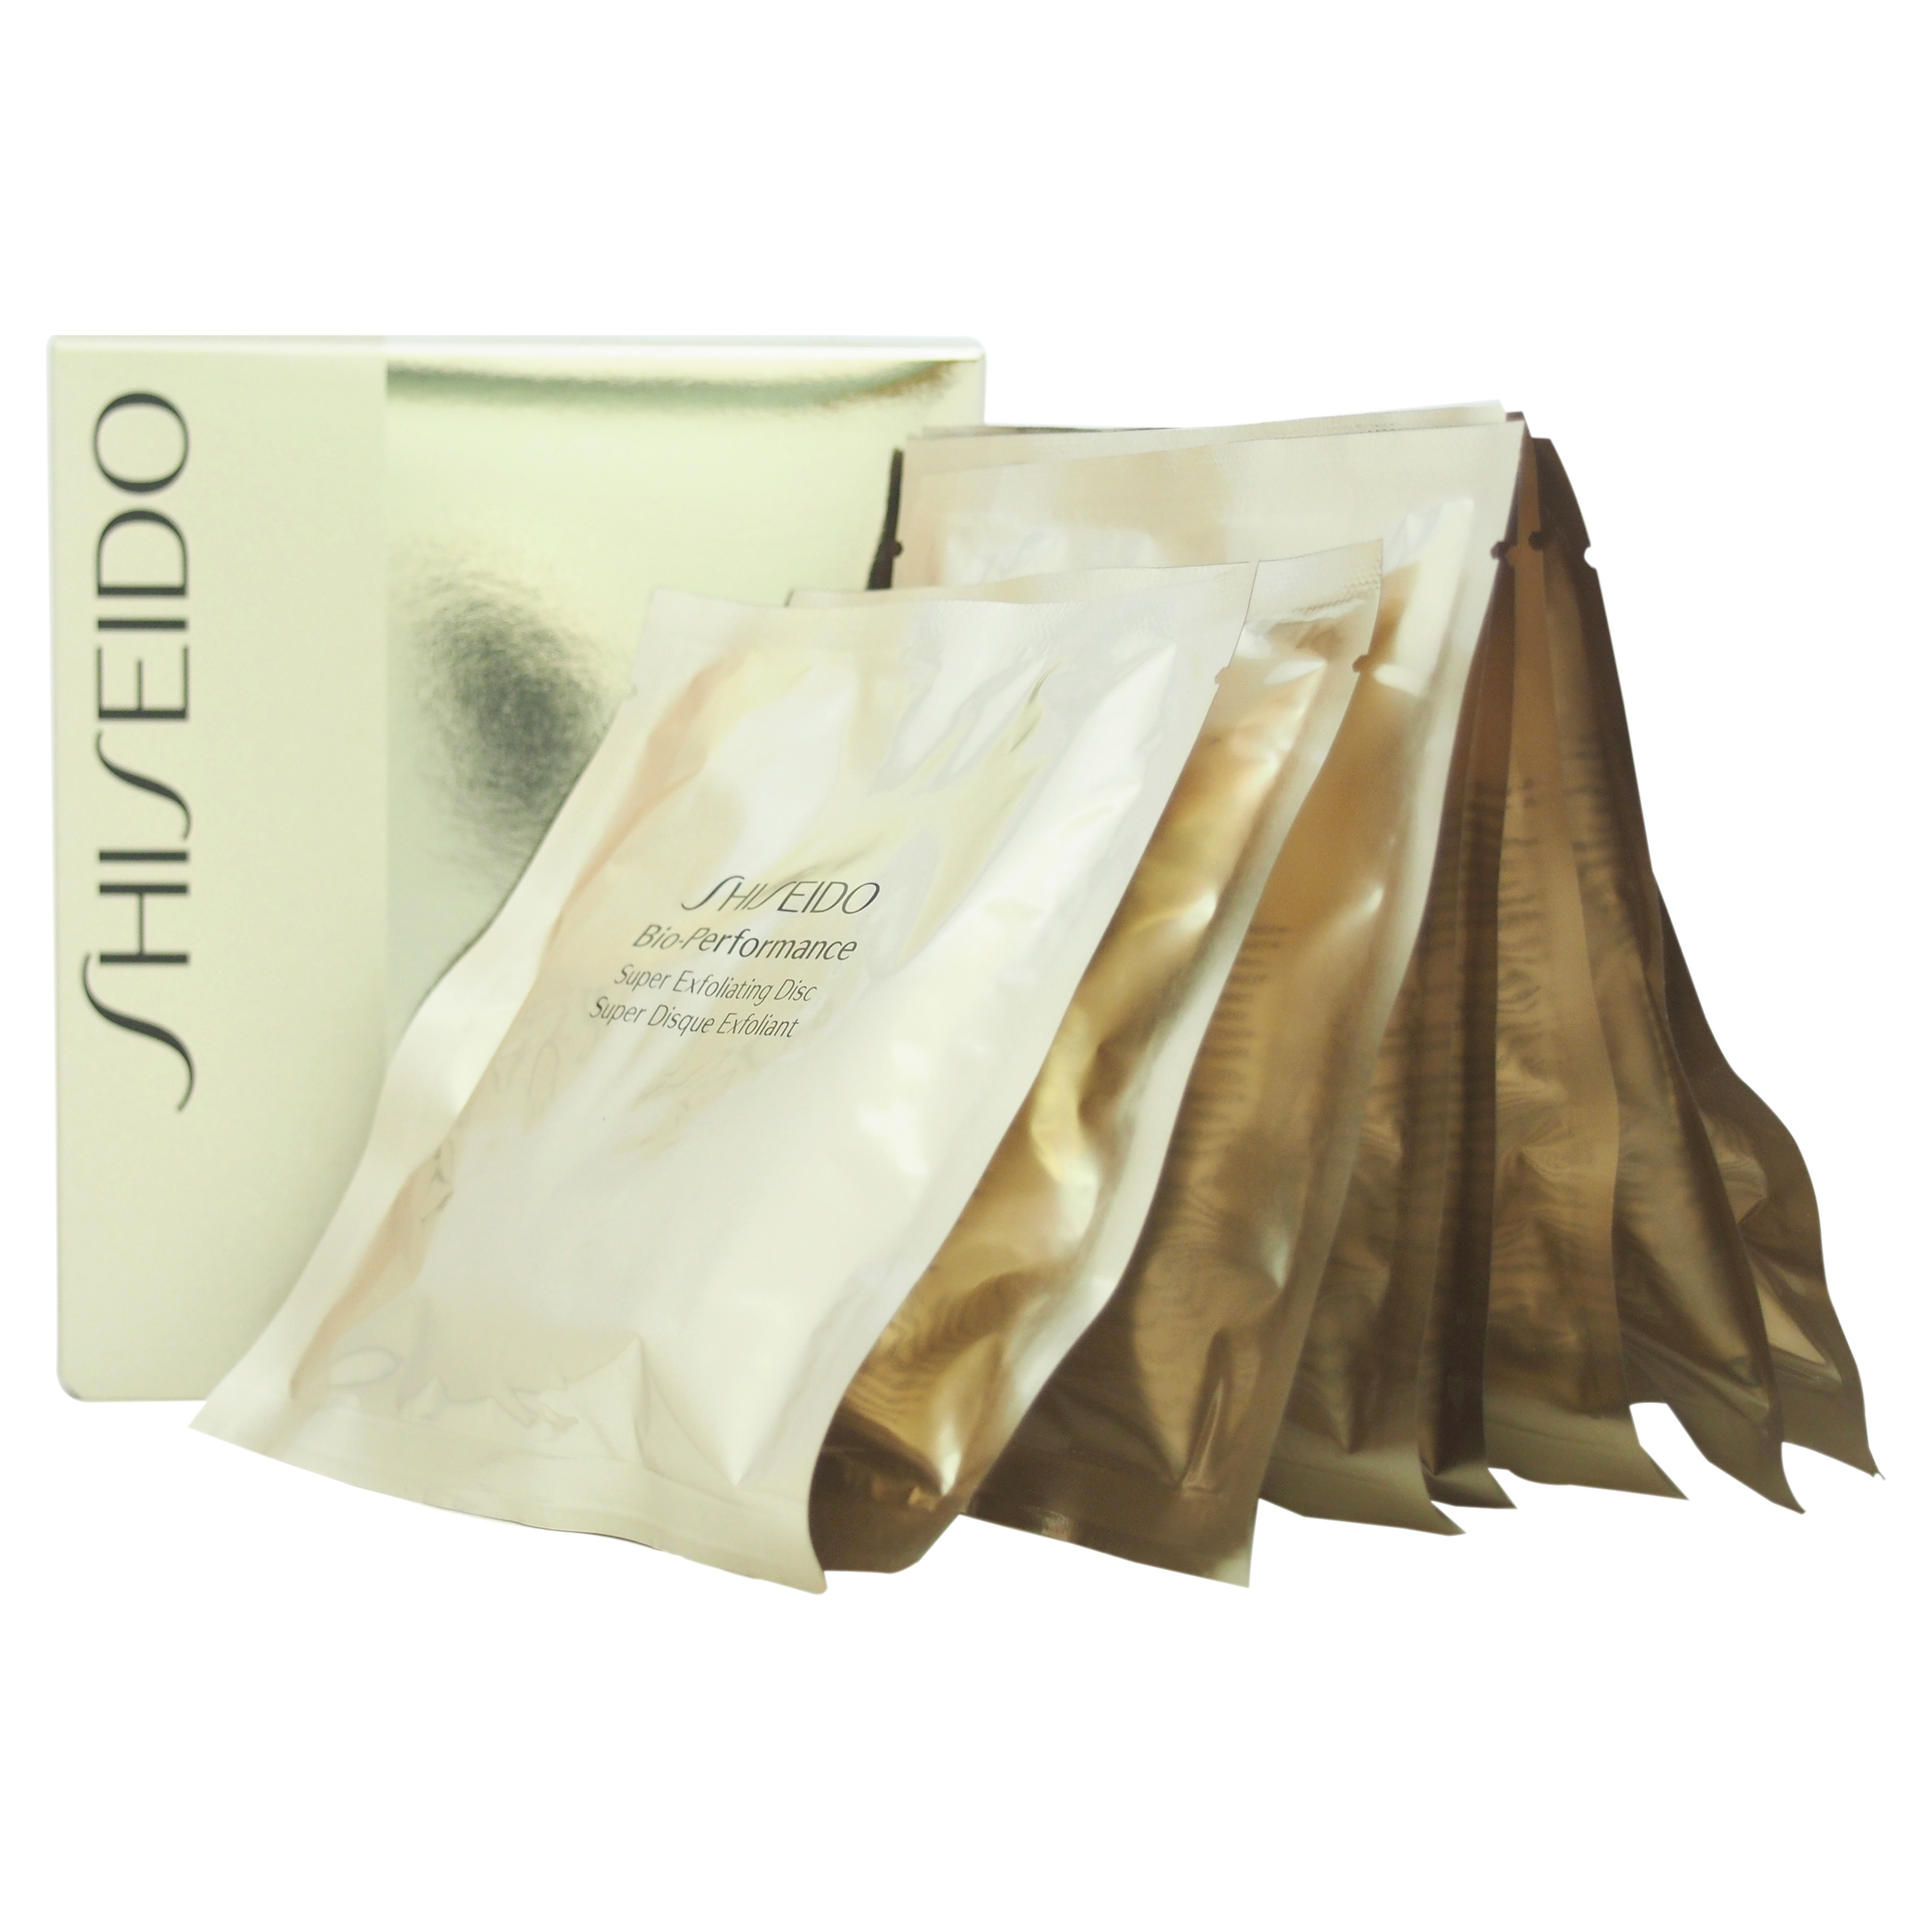 Bio Performance Super Exfoliating Discs by Shiseido for Unisex - 8 Discs Exfoliating Discs